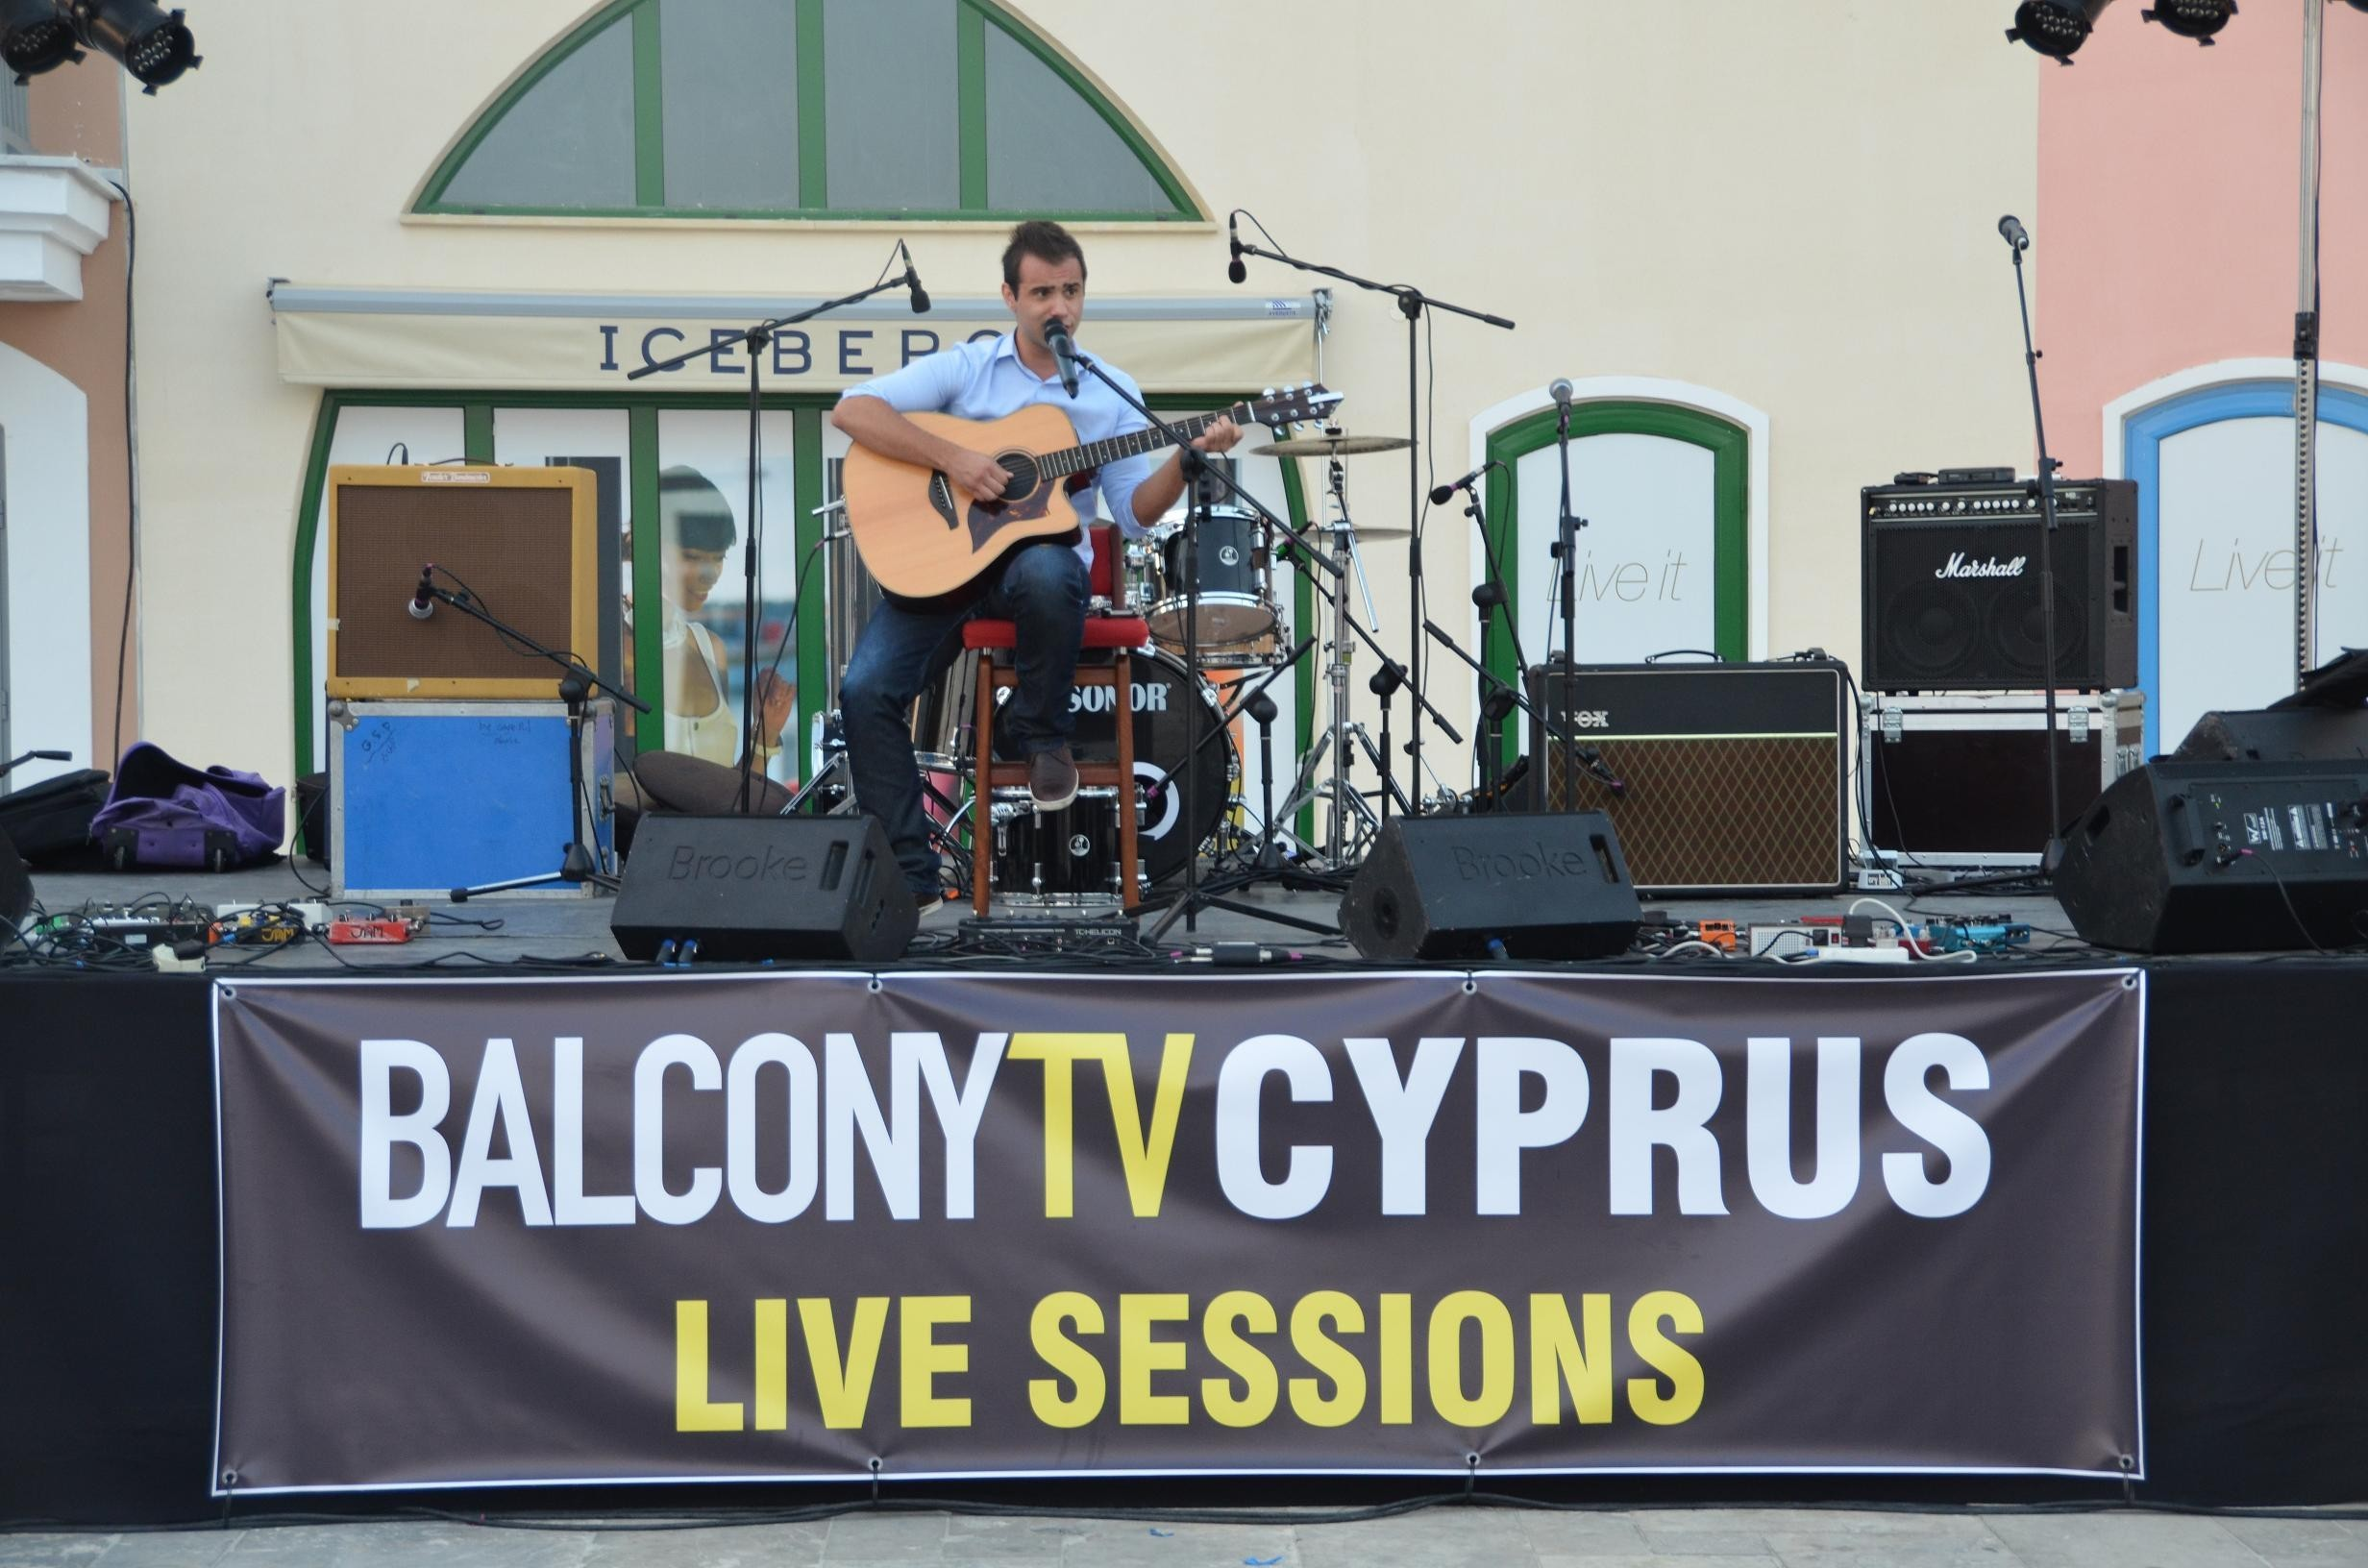 Balcony tv live sessions for Balcony sessions